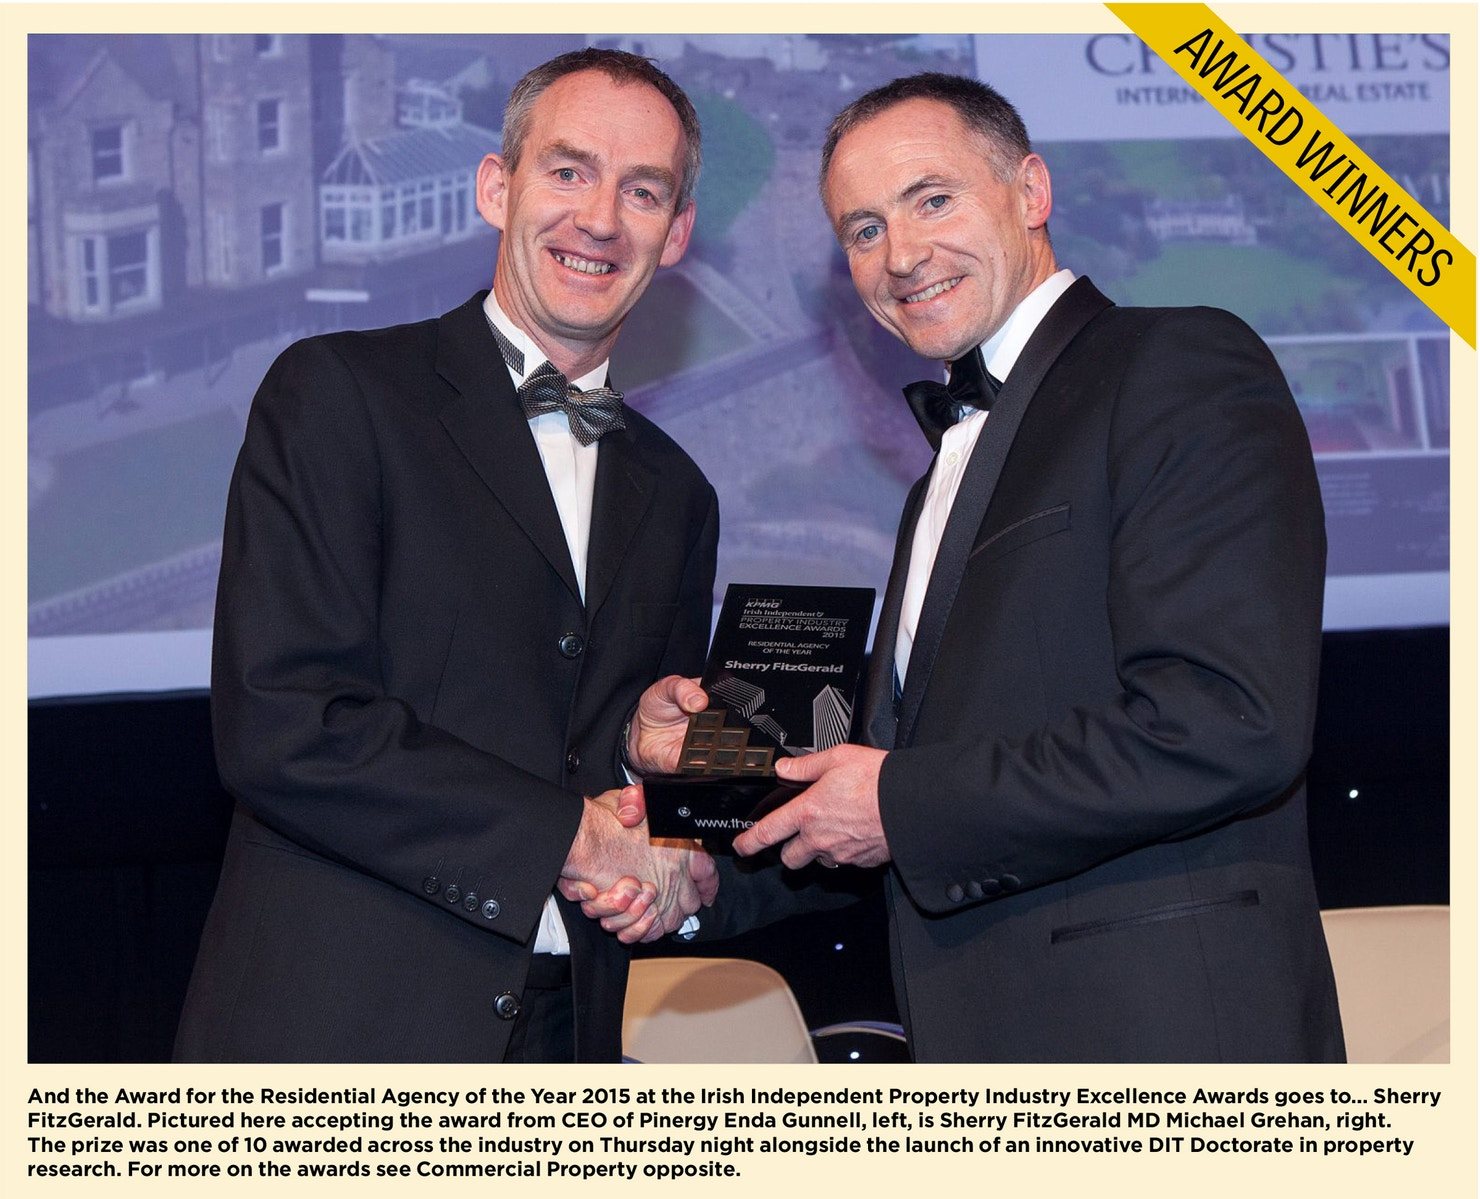 Pinergy sponsors Ireland's first irish independent property industry excellence awards